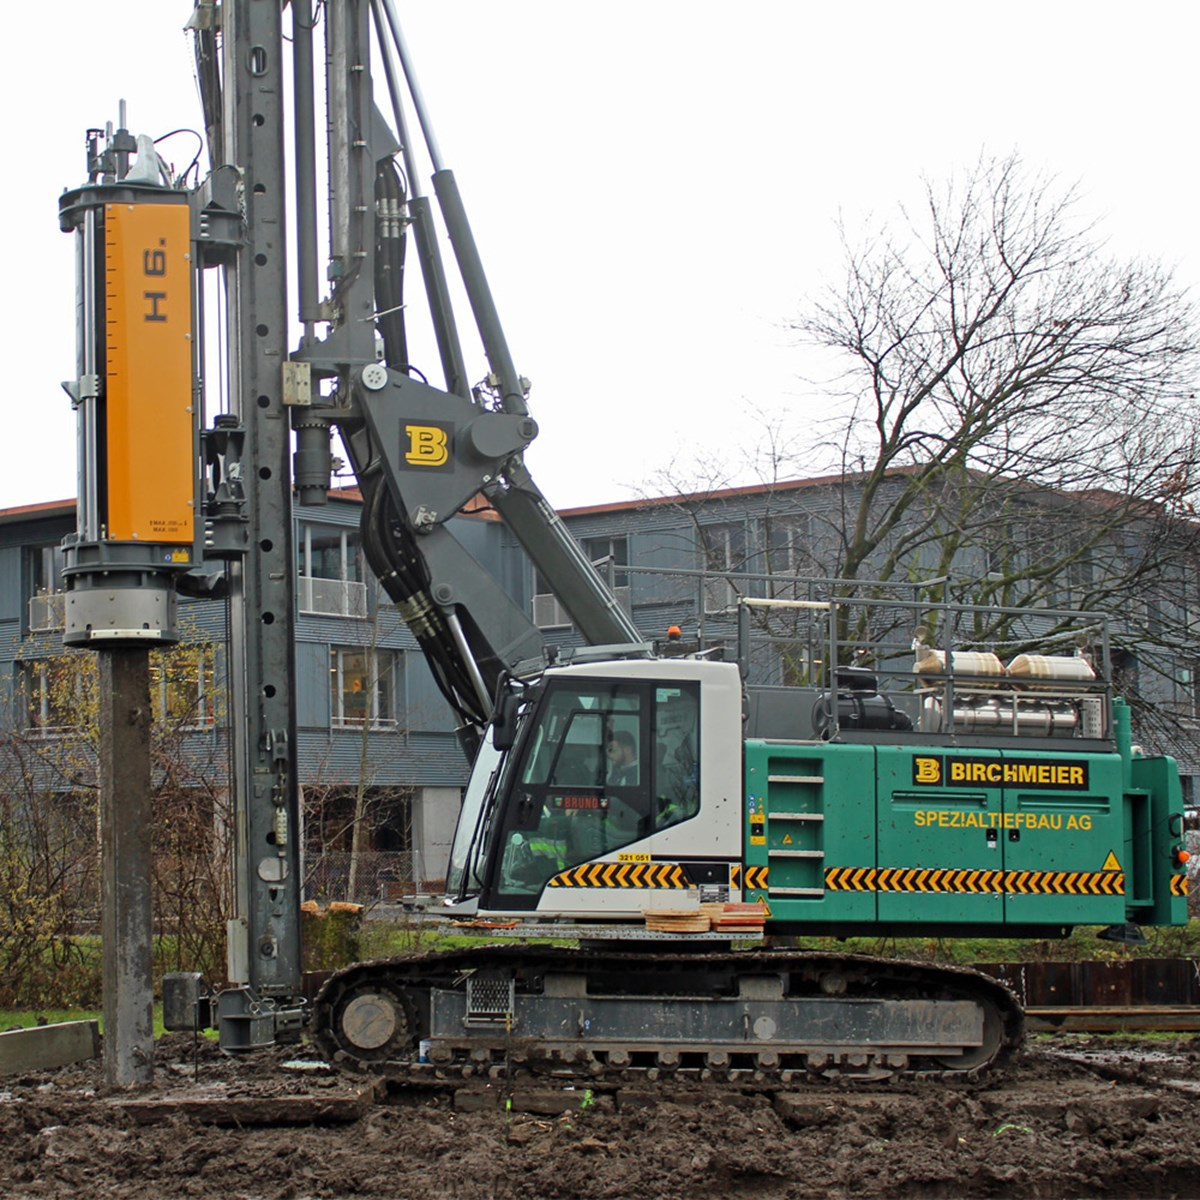 liebherr-piling-and-drilling-lrb-18-hammer-h-6-impacting-pre-fab-concrete-pi-1.jpg